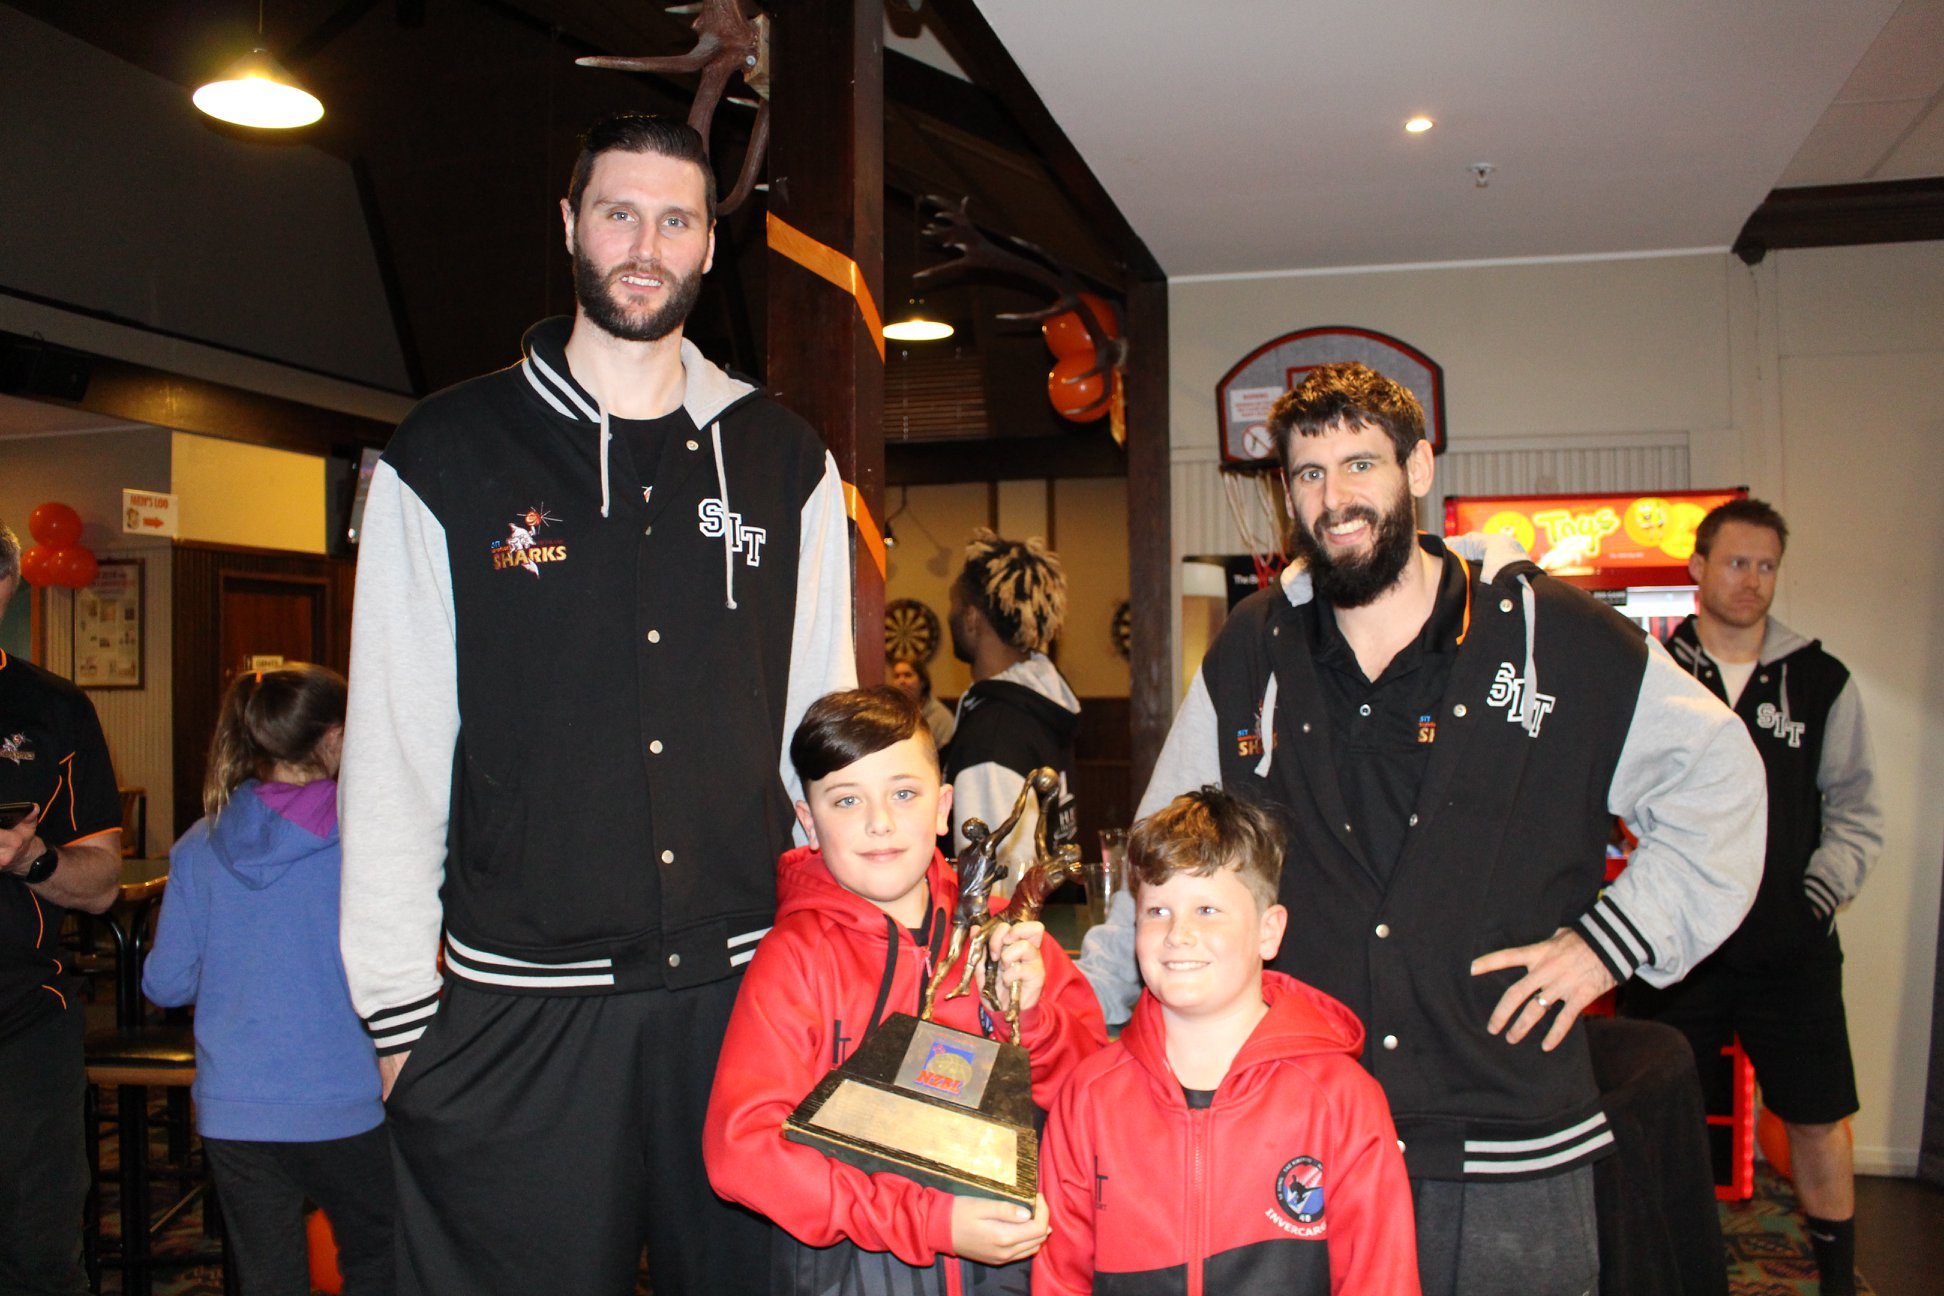 Photo: Alex Pledger, left, and team mate Jarrad Weeks celebrate with young Sharks fans. Pic: Southland Sharks